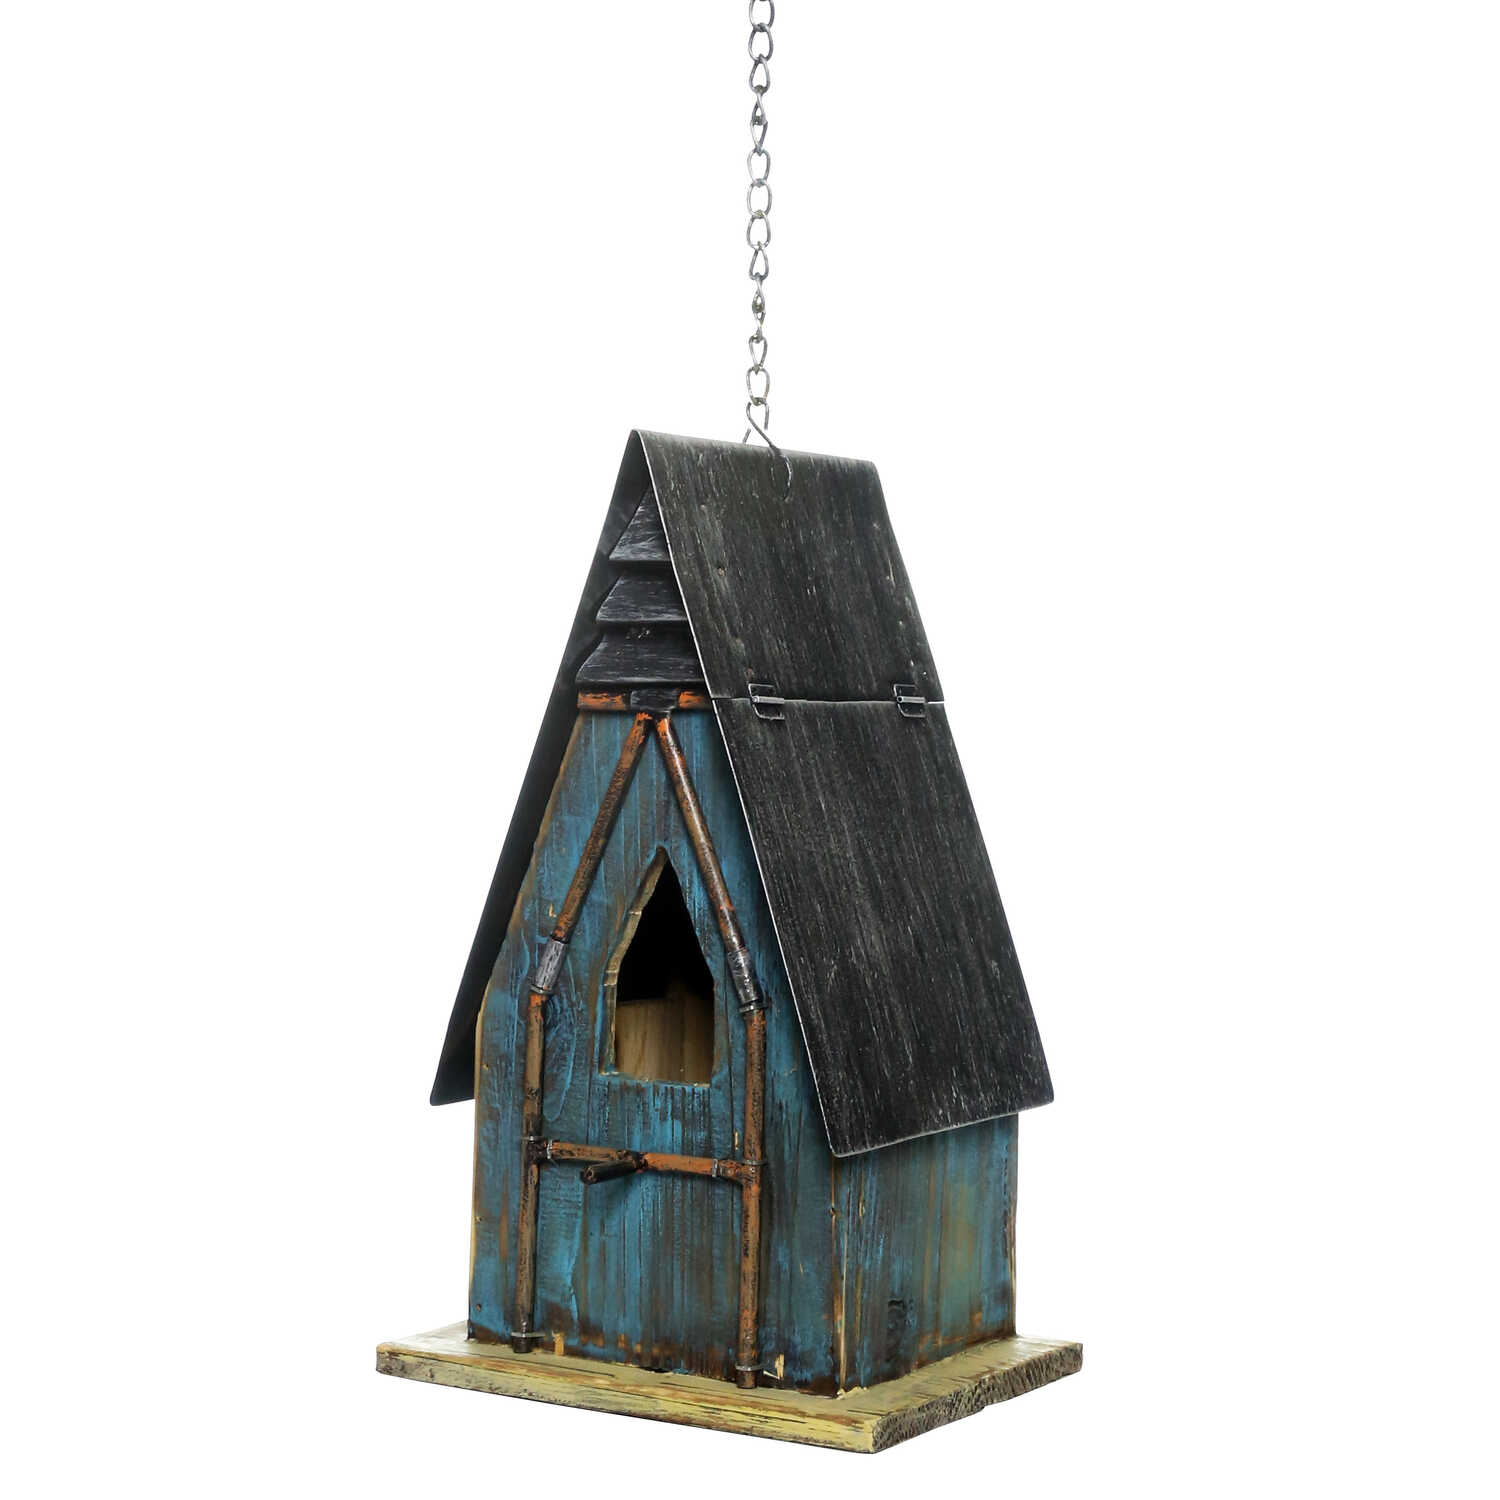 Alpine  12 in. H x 6 in. W x 6 in. L Wood  Bird House